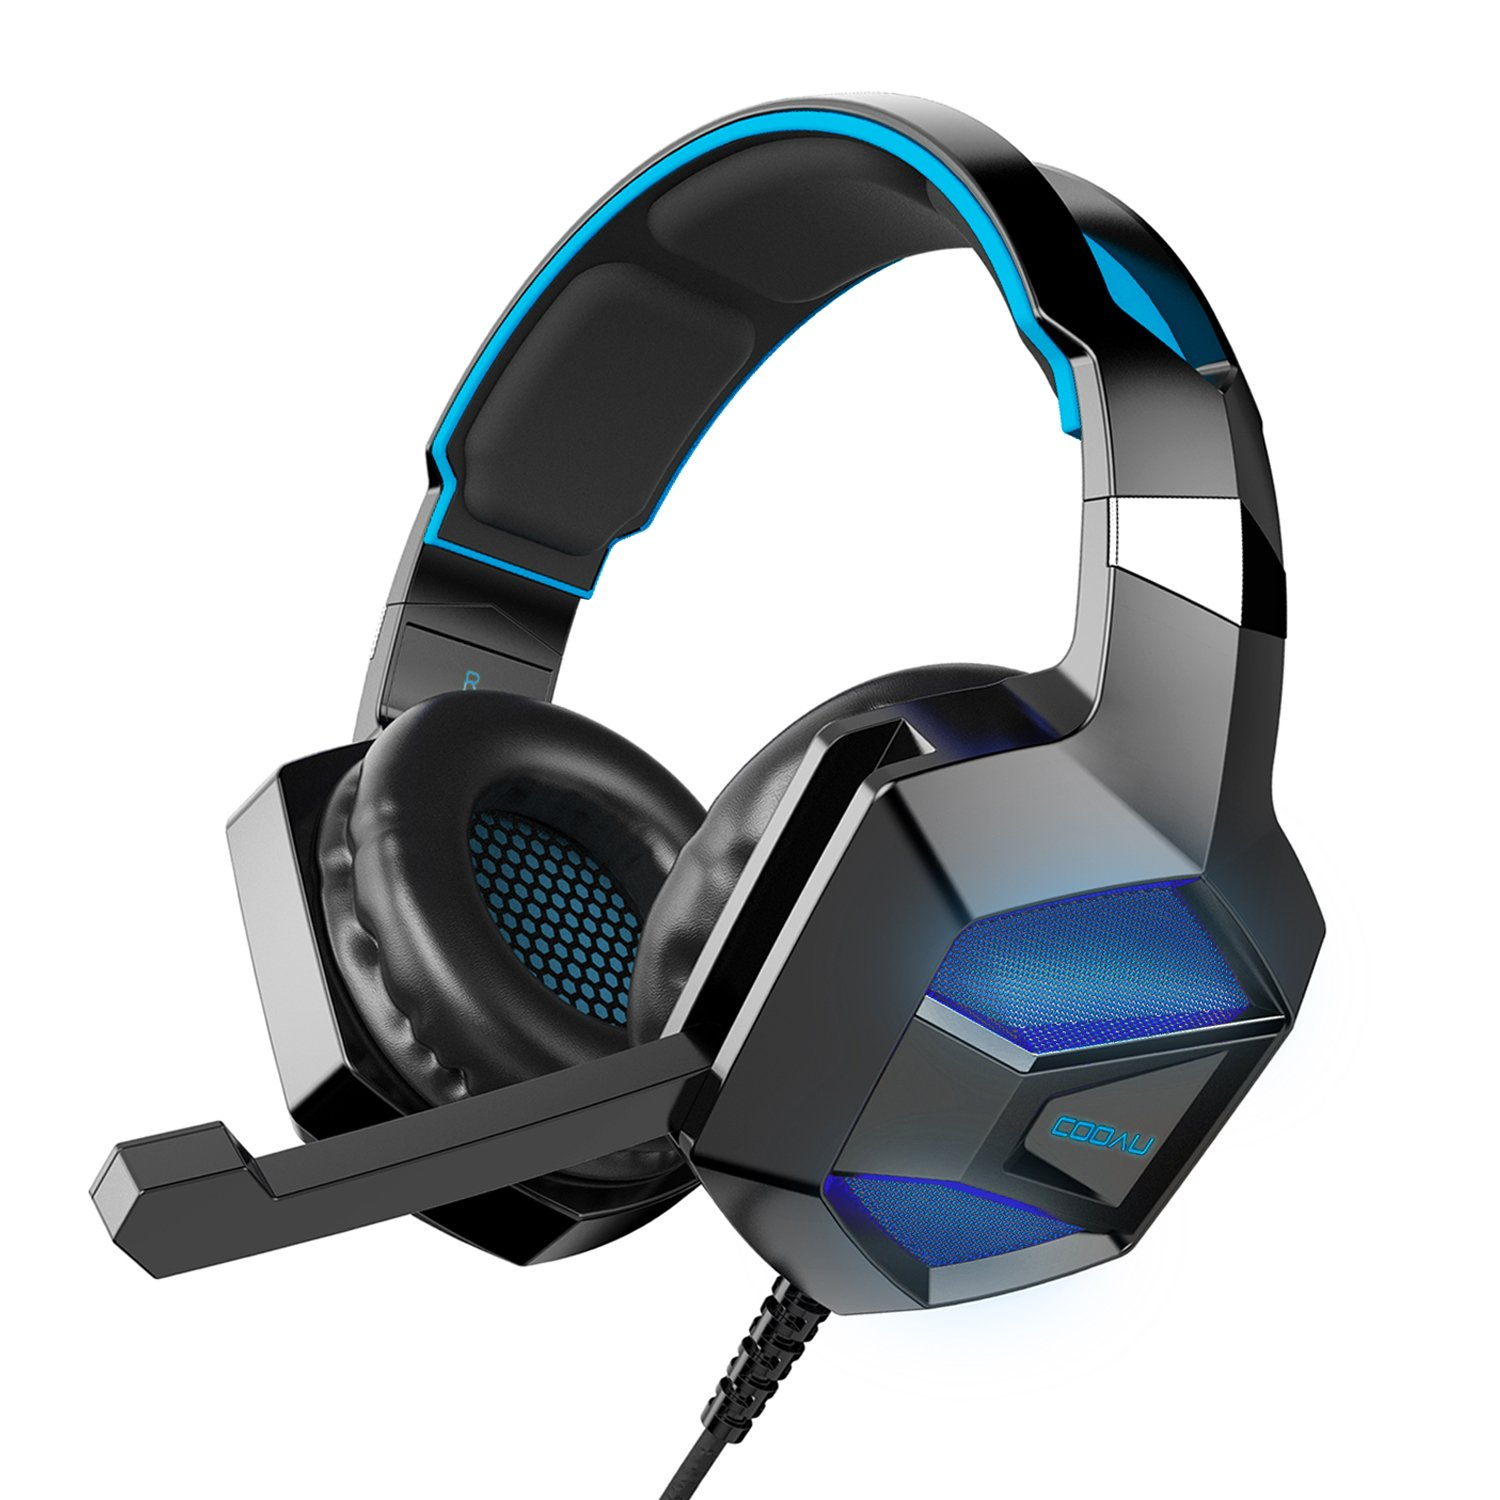 COOAU Stereo Gaming Headset with Mic, LED Lights, Volume Control for PS4, PC, New Xbox One, iPad, Laptop, Smartphones, Noise Cancelling Over-Ear Headphones with 3.5mm Plugs and USB Plugs CU002-BB